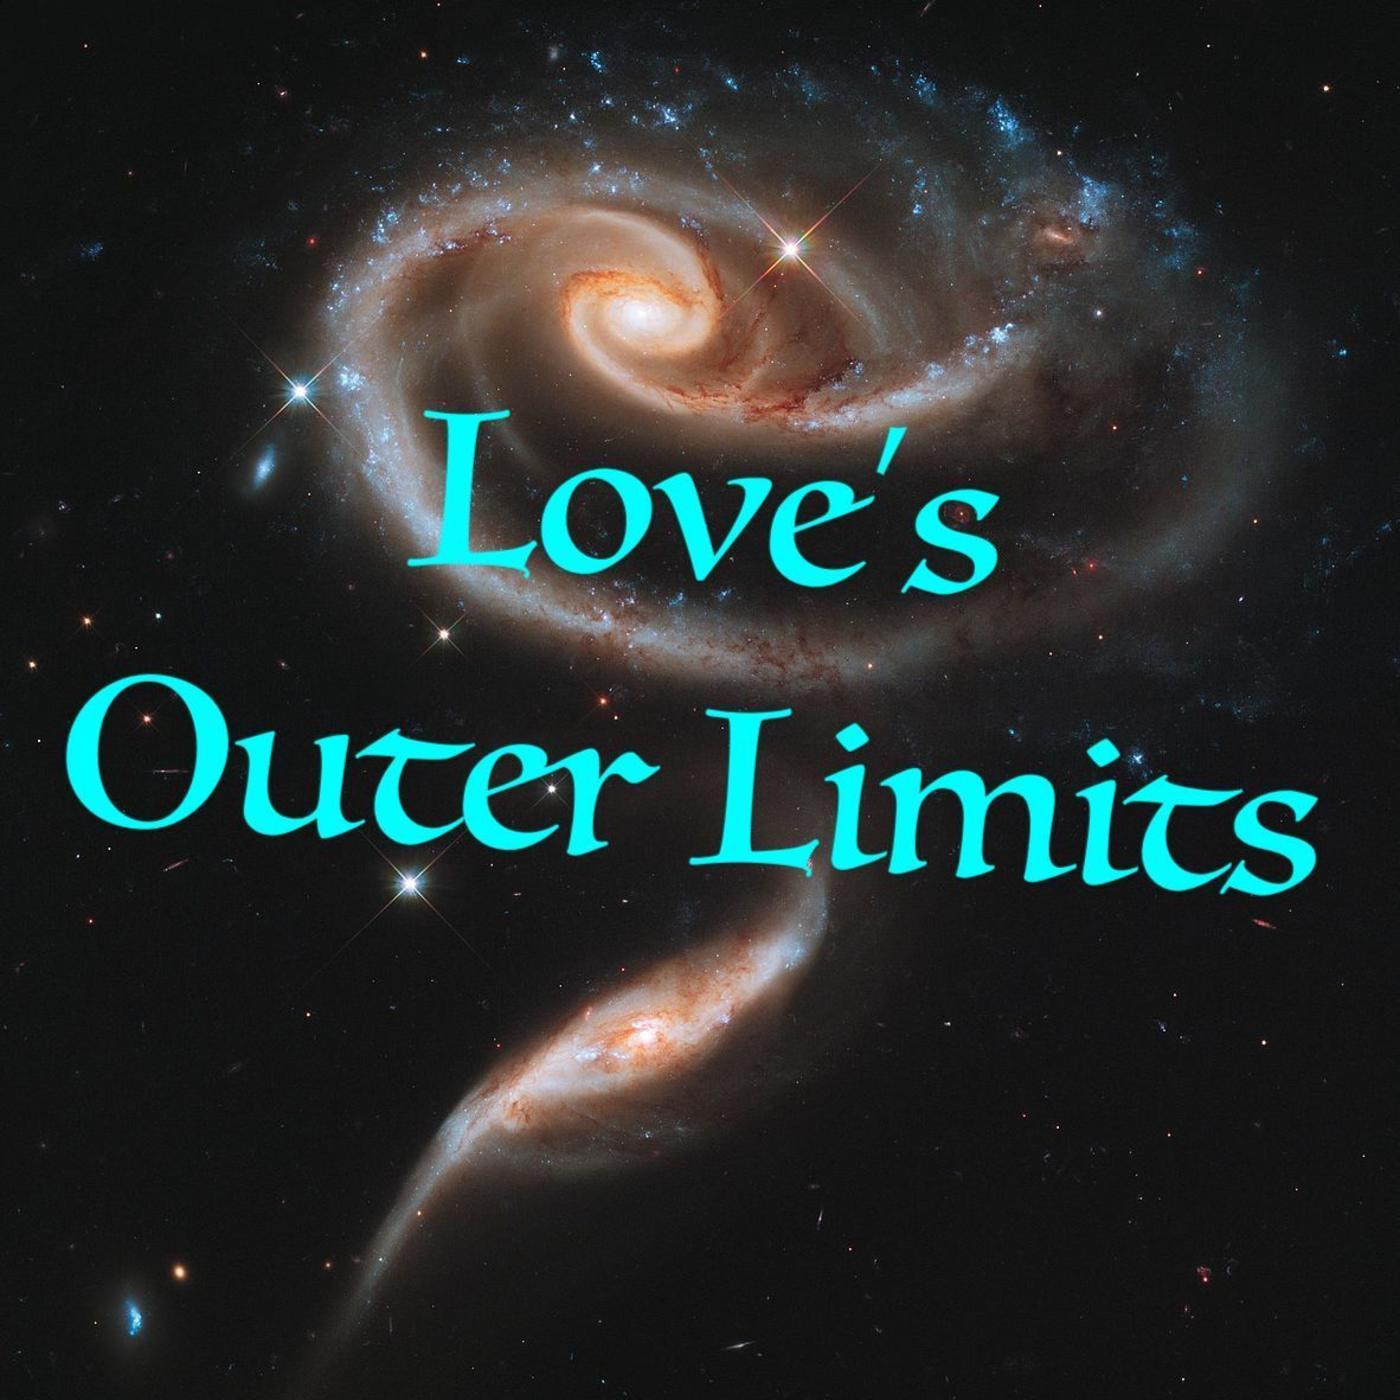 Love's Outer Limits